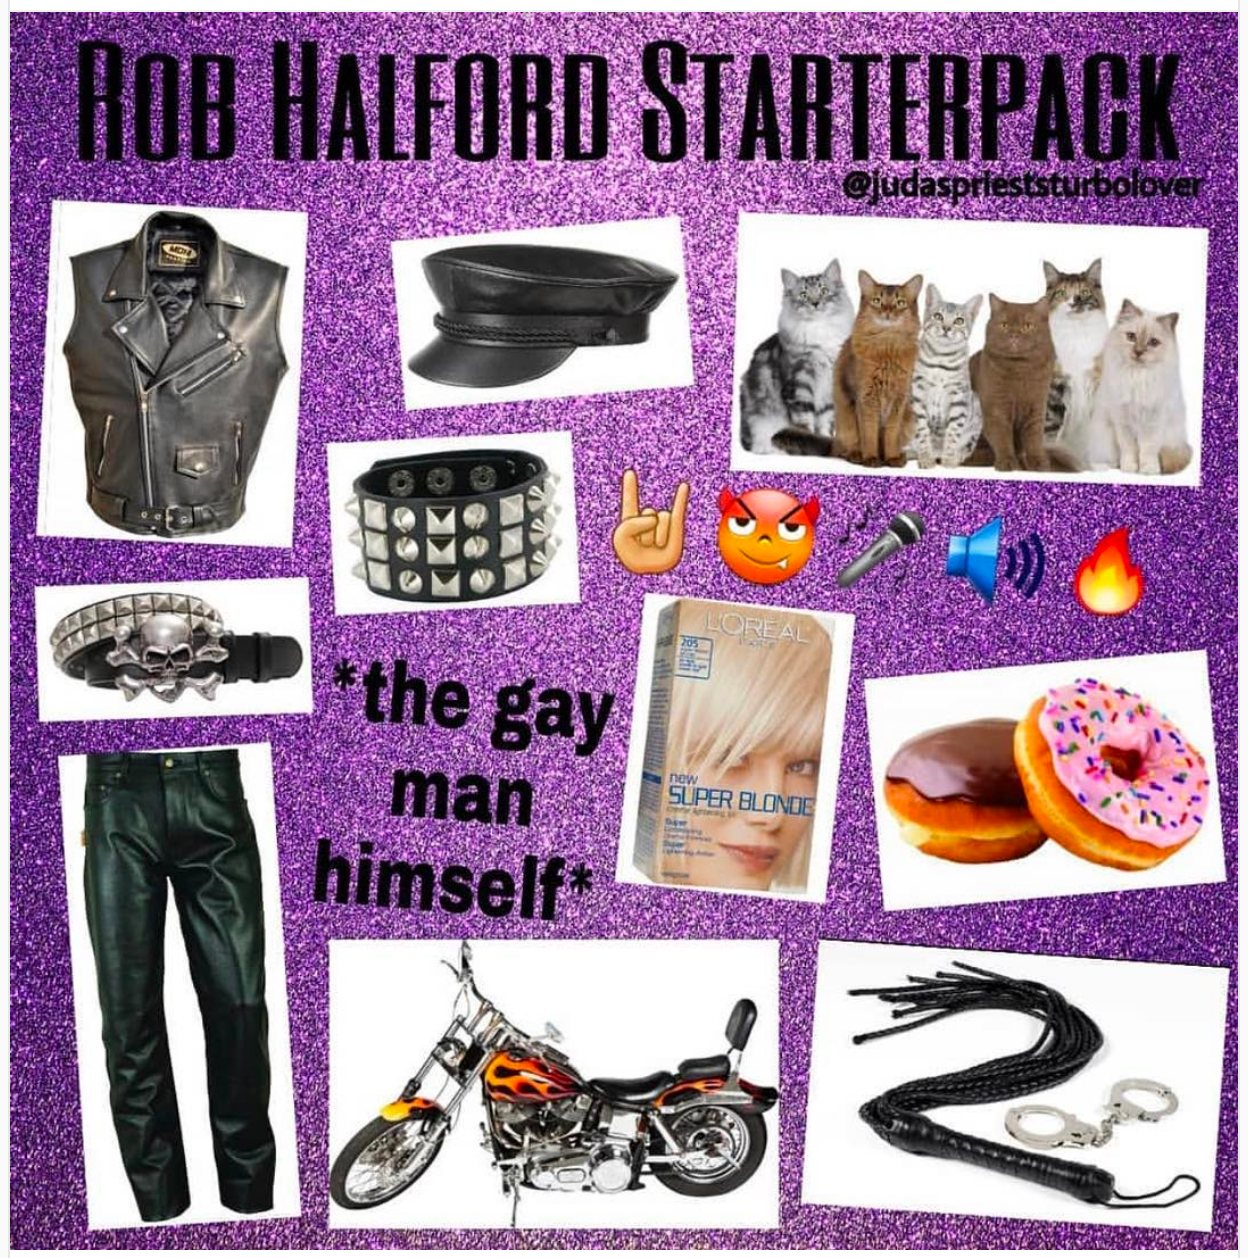 Rob Halford Starterpack